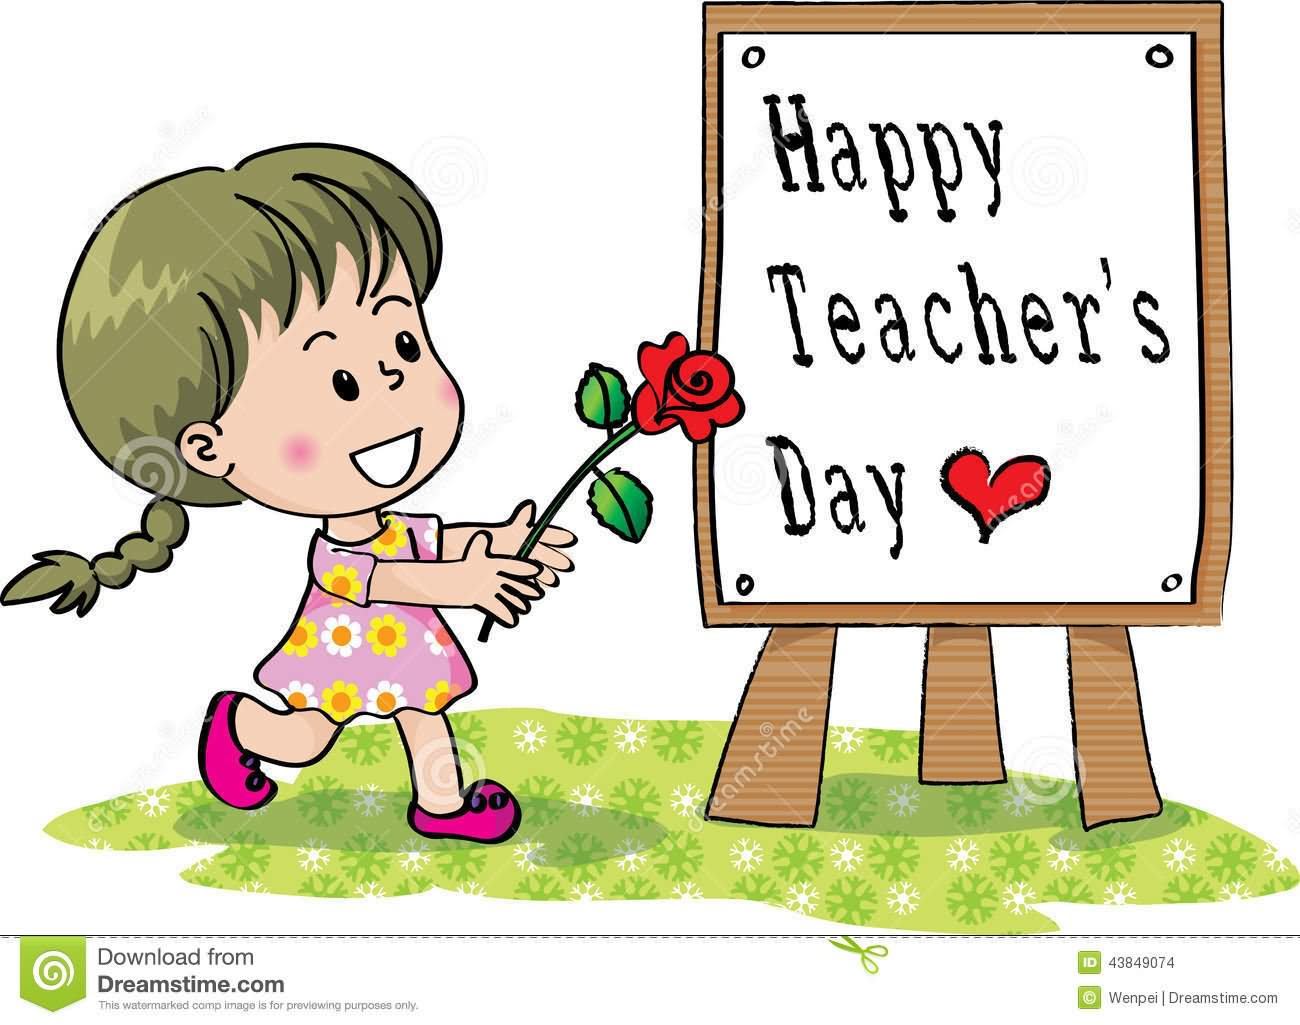 55 Happy Teachers Day 2016 Greeting Pictures And Images.